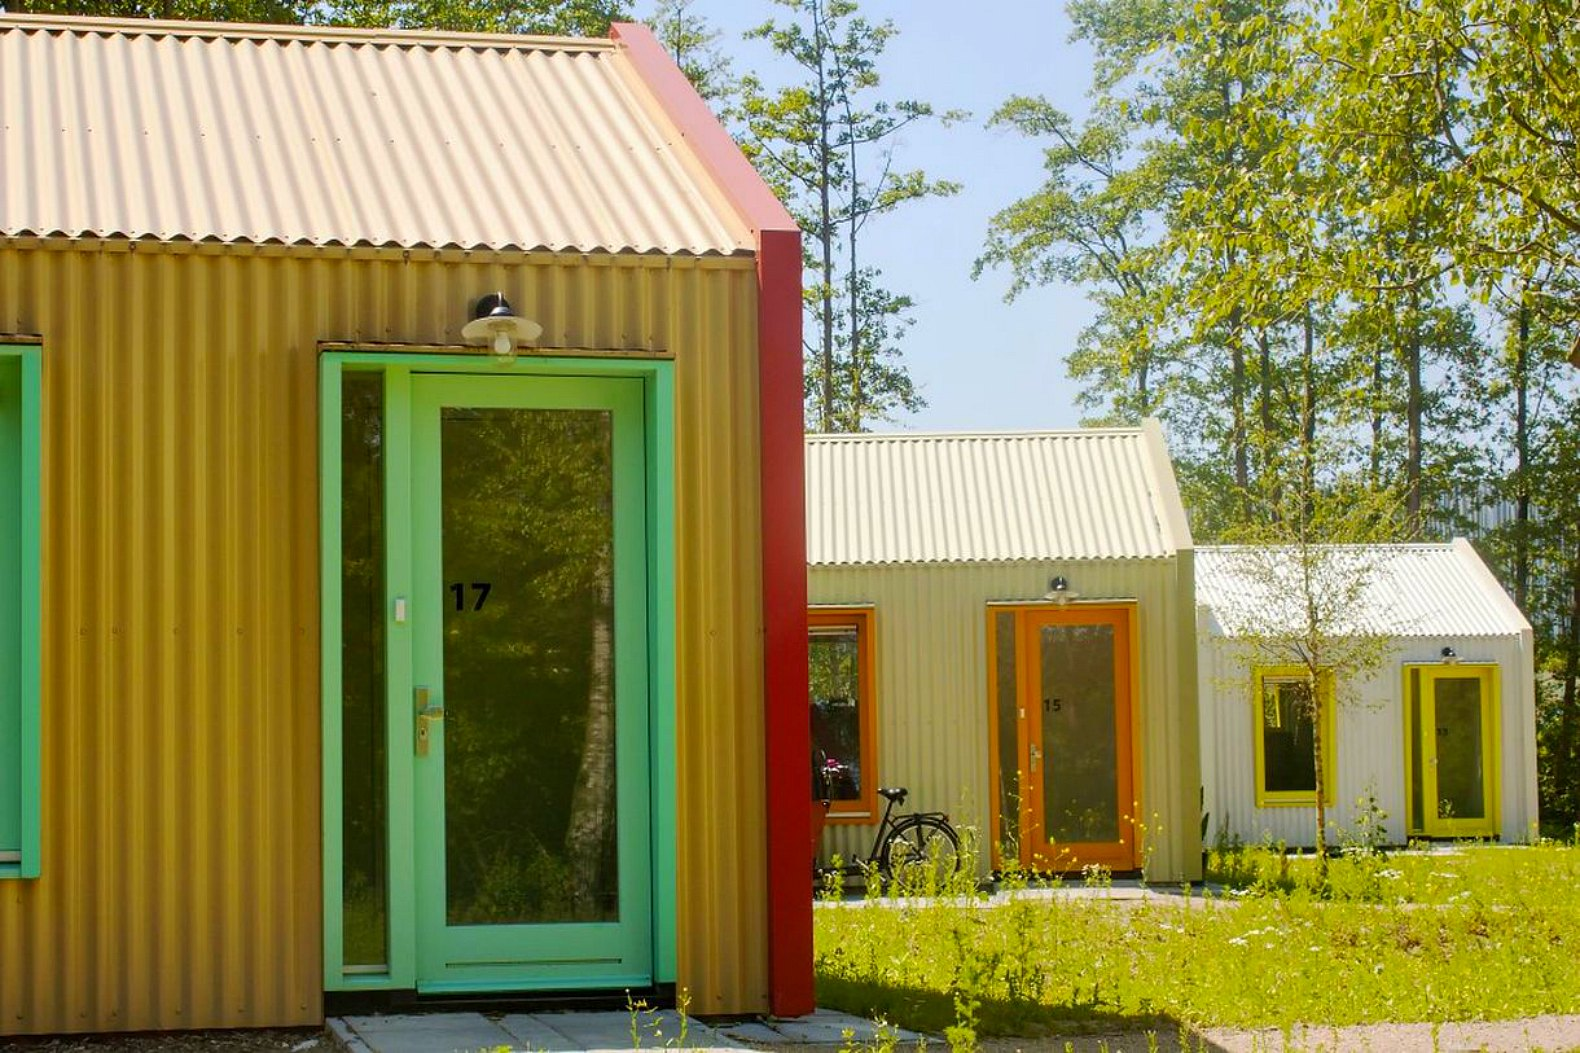 Studio Elmo Vermijs Designs Tiny House Village For Homeless In The